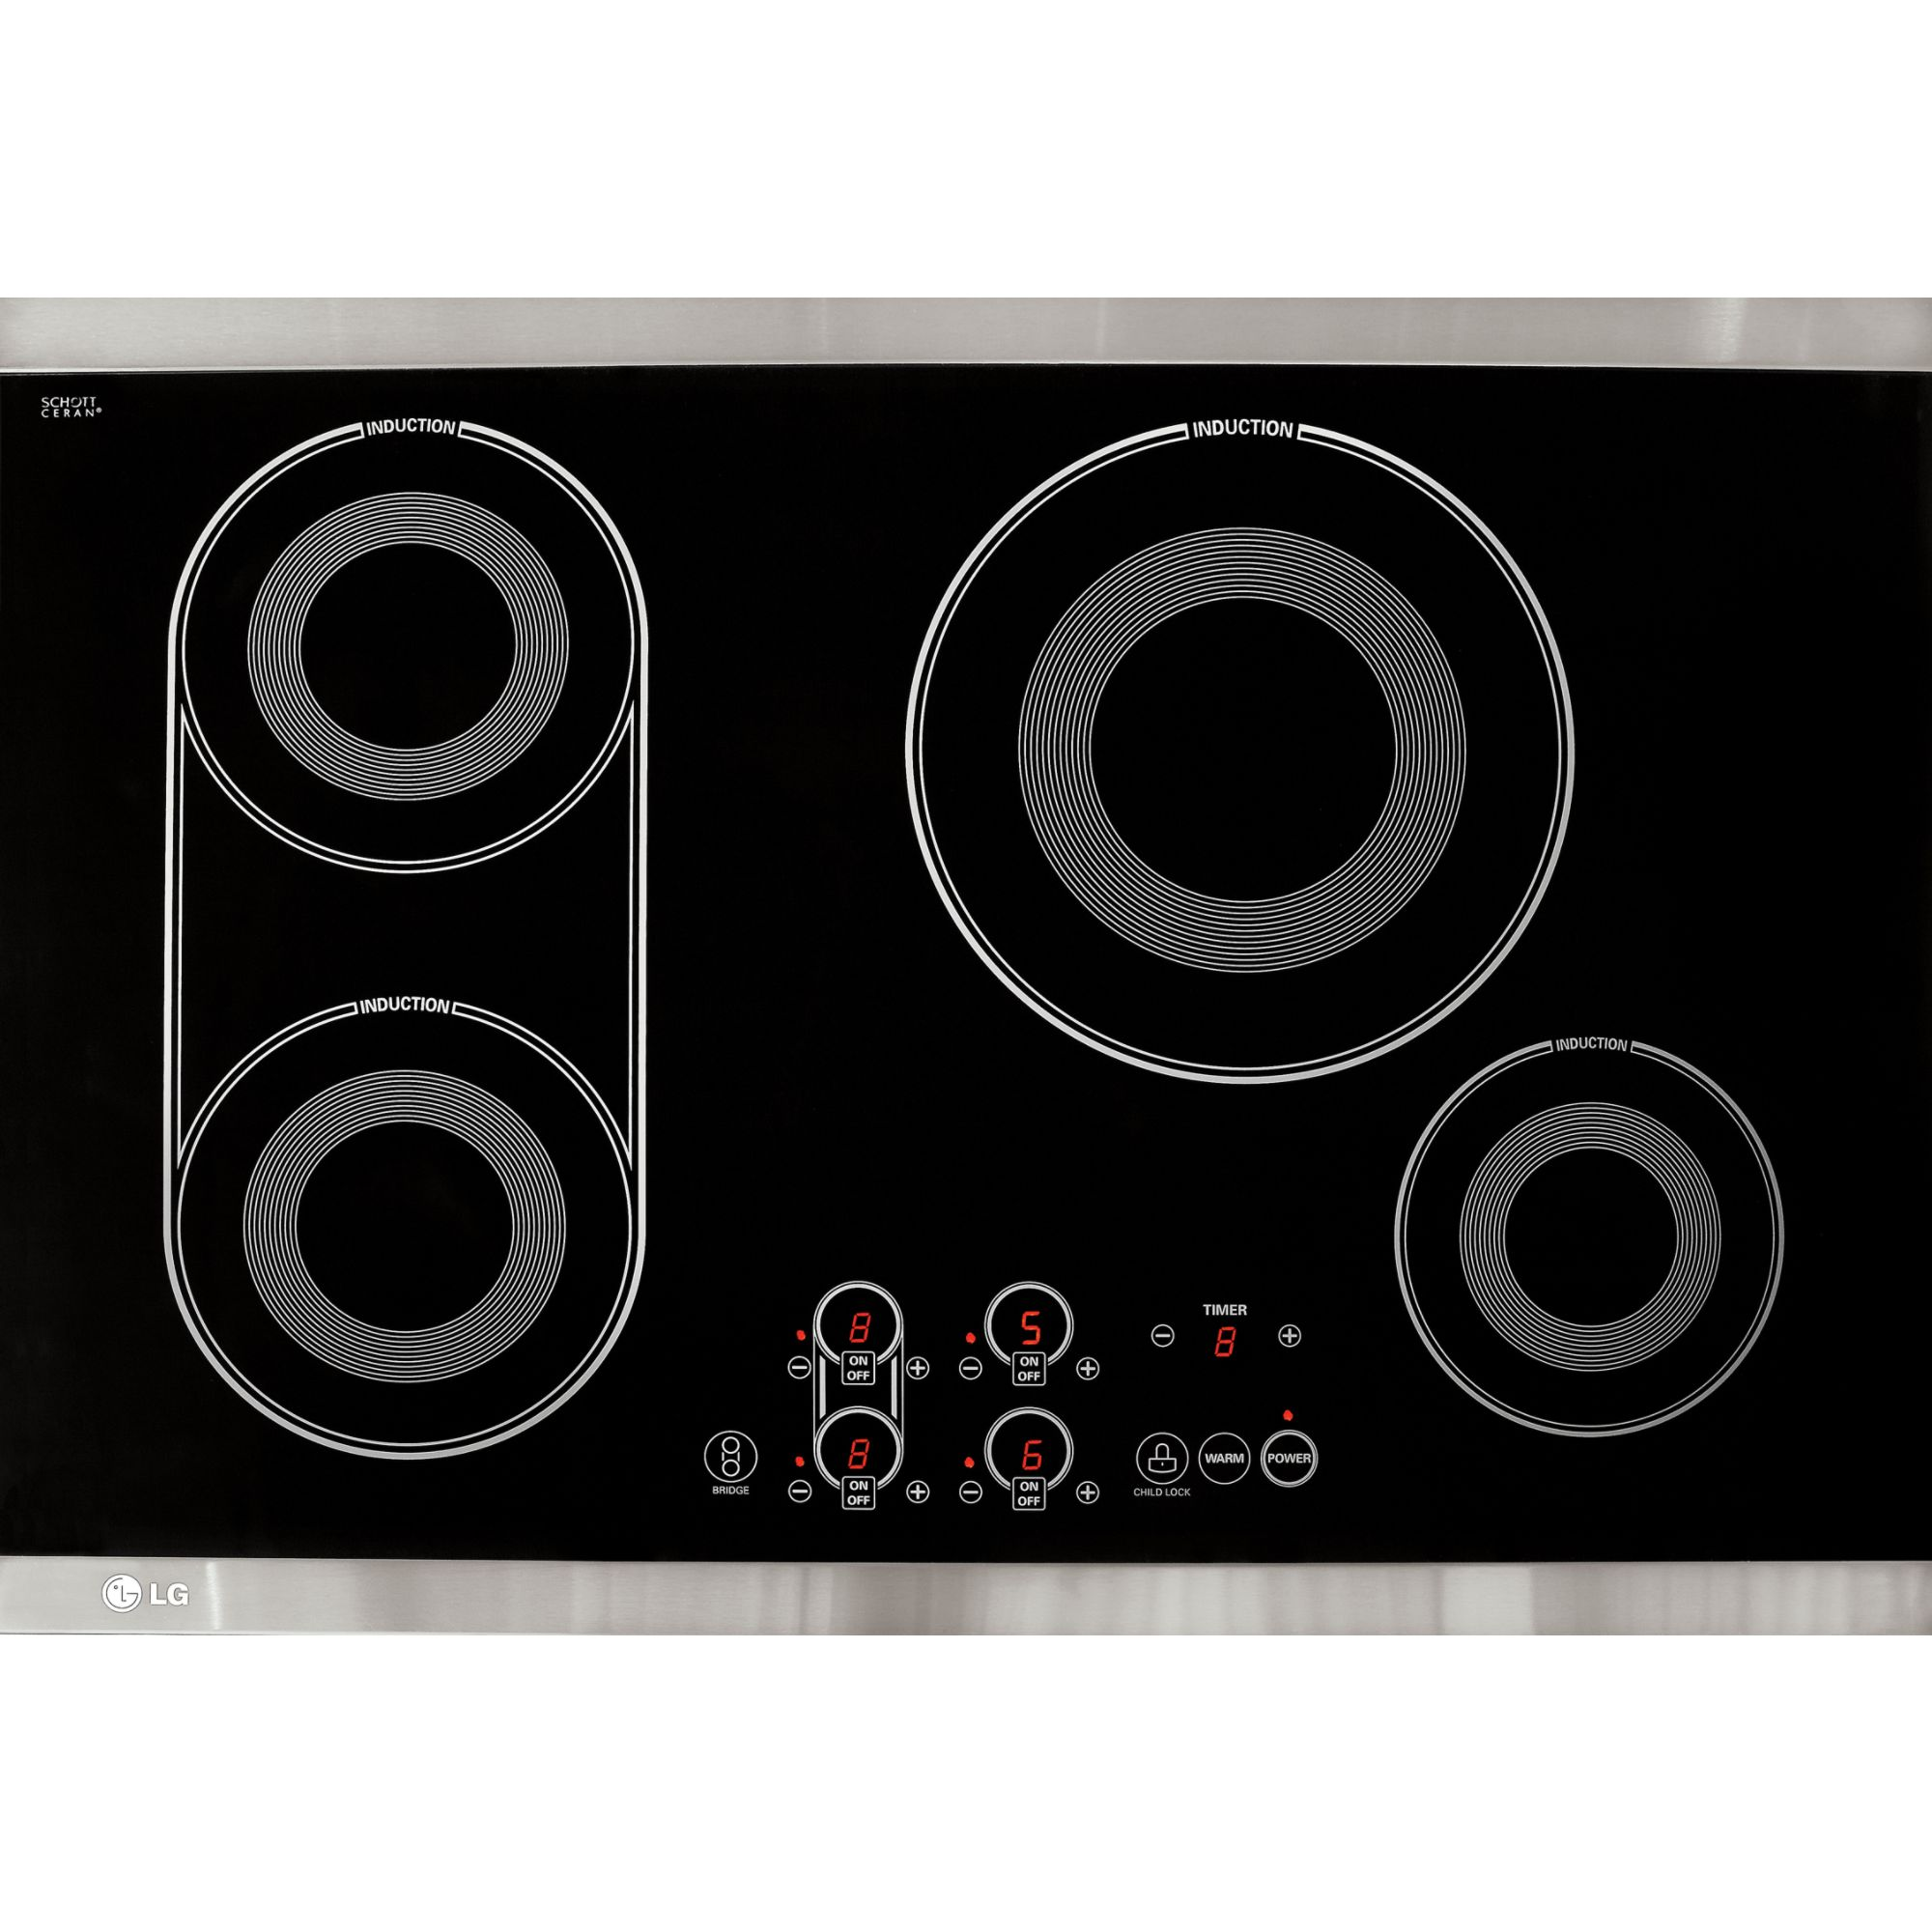 Induction Cooktop Lg Lce30845 30 Quot Induction Electric Cooktop